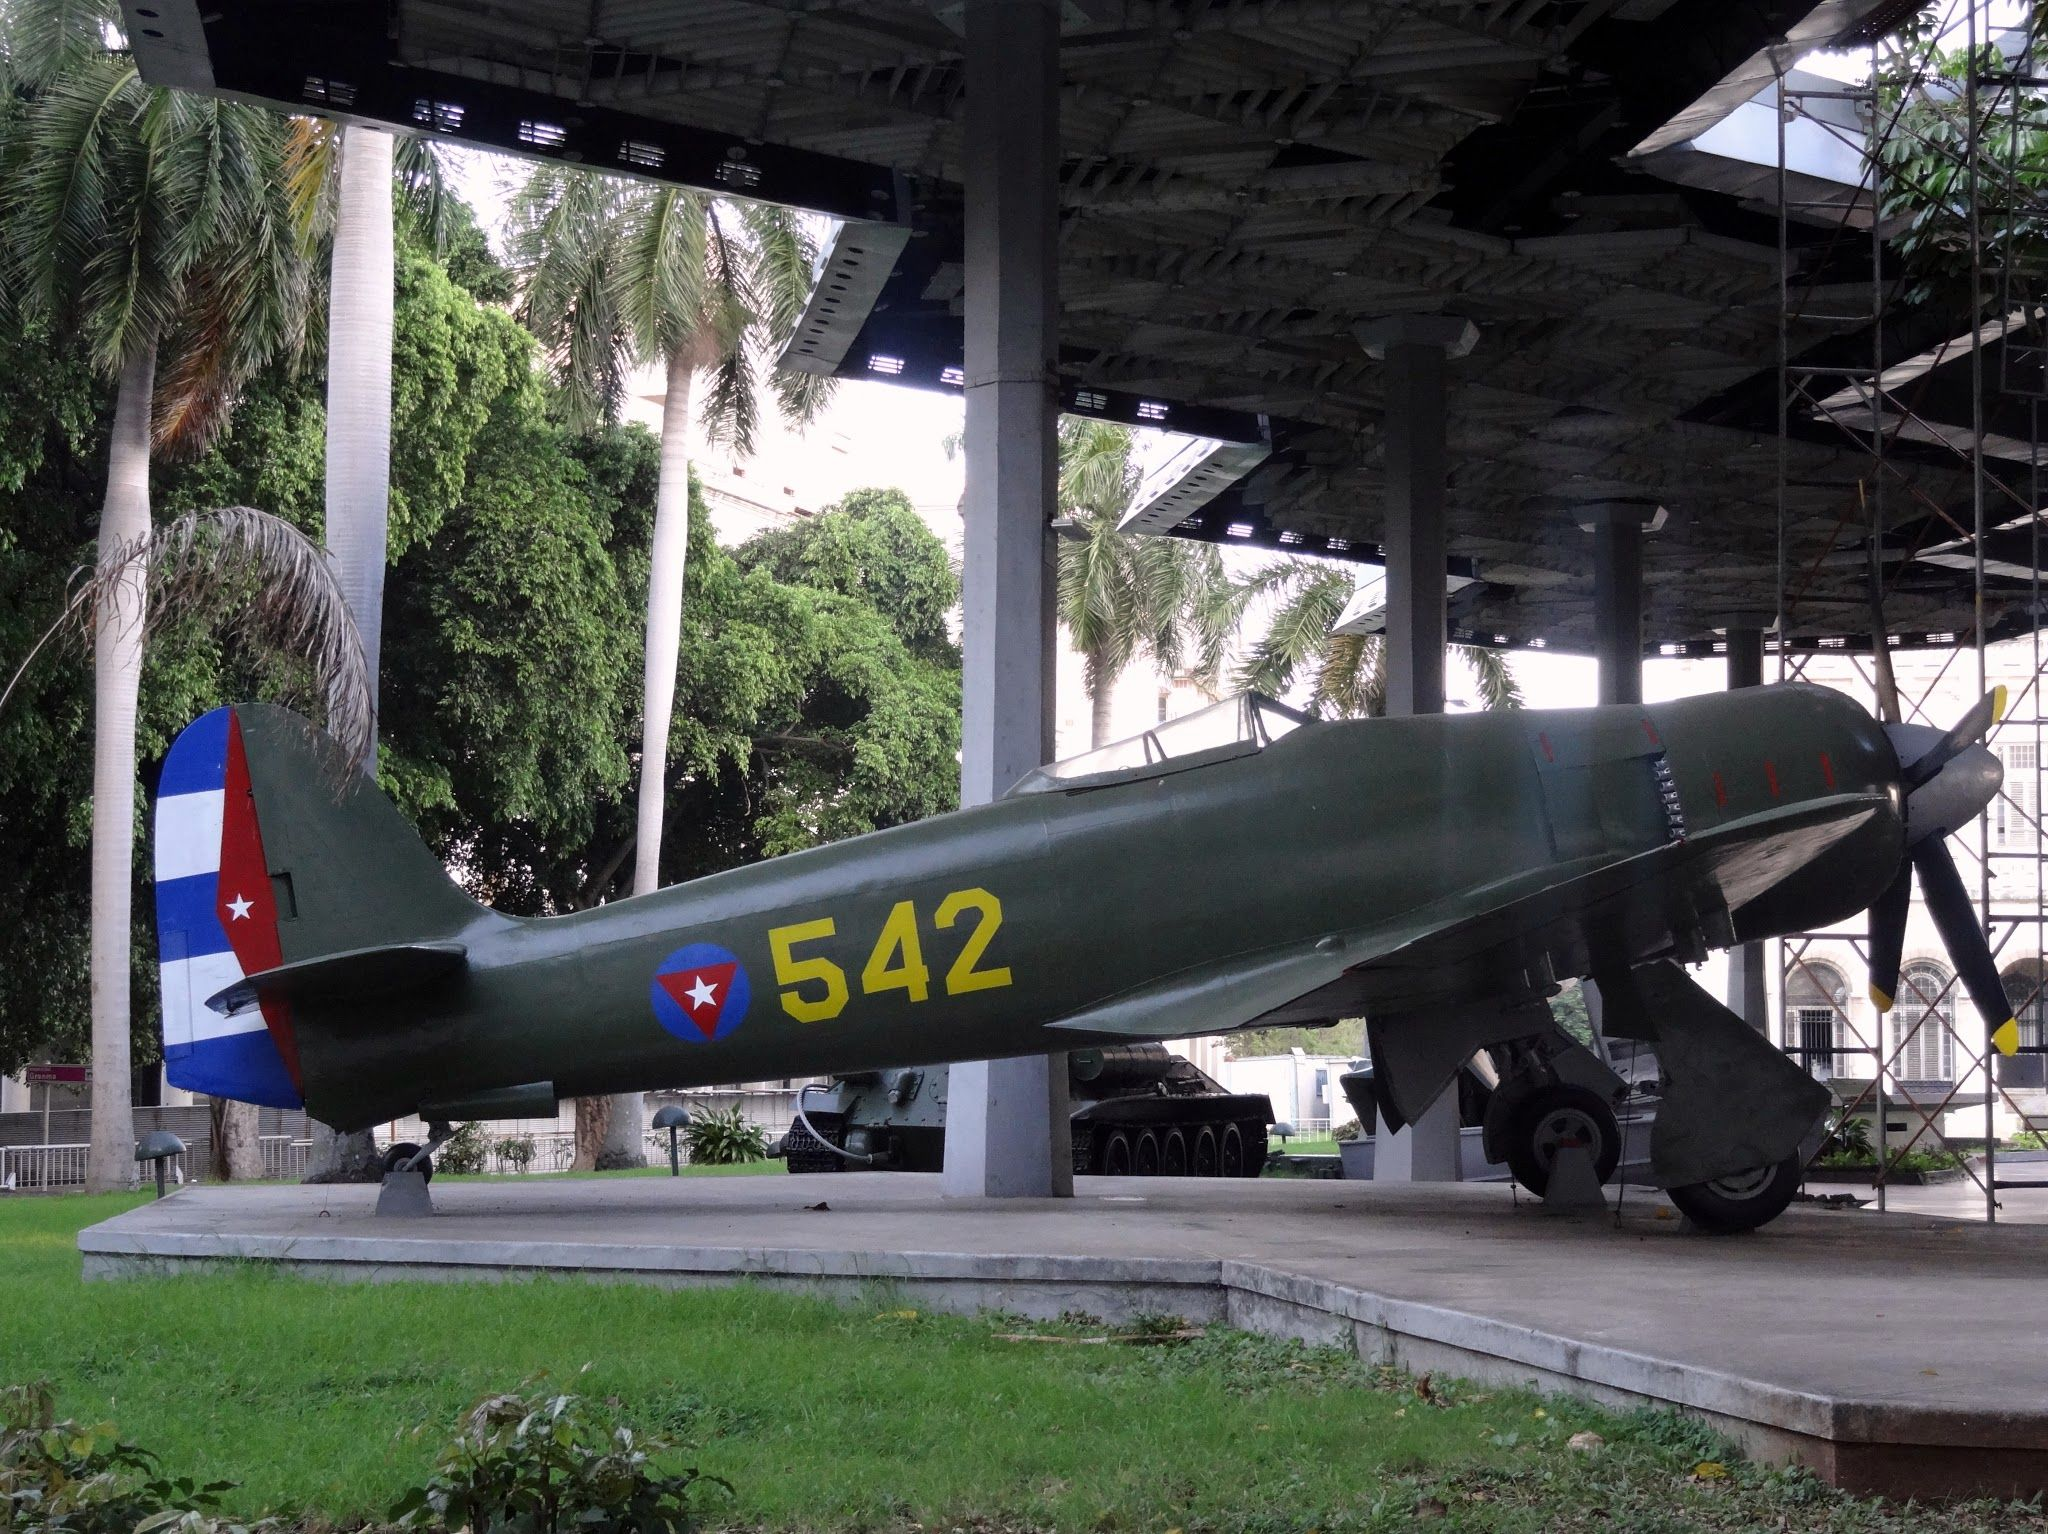 Cuban military plan in front of Museum of the Revolution. Photo taken by Brian Kaylor during a trip for the COEBAC's 40th anniversary celebration at Iglesia Bautista Enmanuel (Emmanuel Baptist Church) in Ciego de Ávila, Cuba.